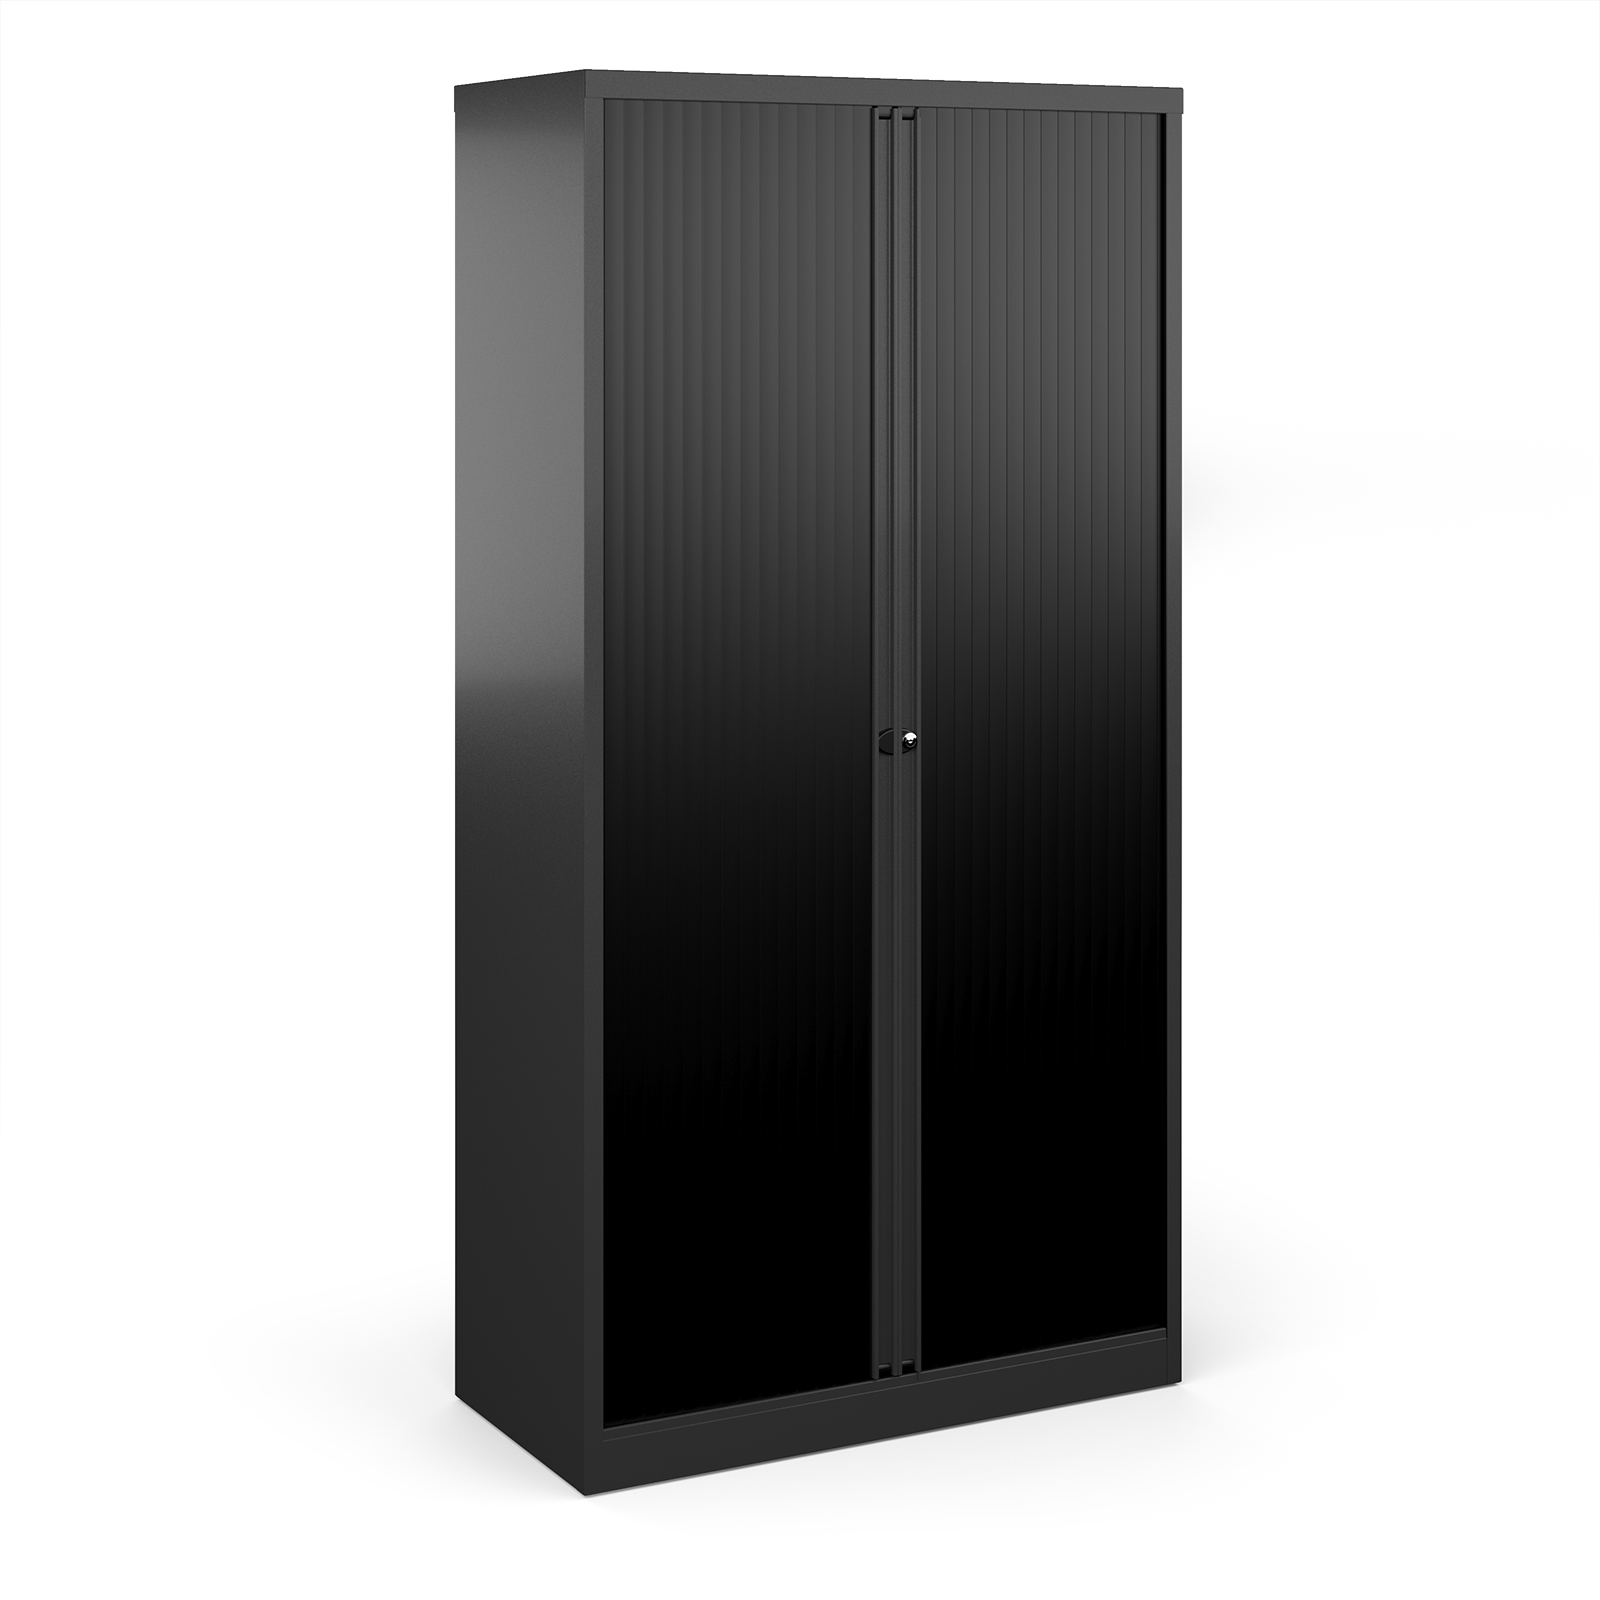 Over 1200mm High Bisley systems storage high tambour cupboard 1970mm high - black